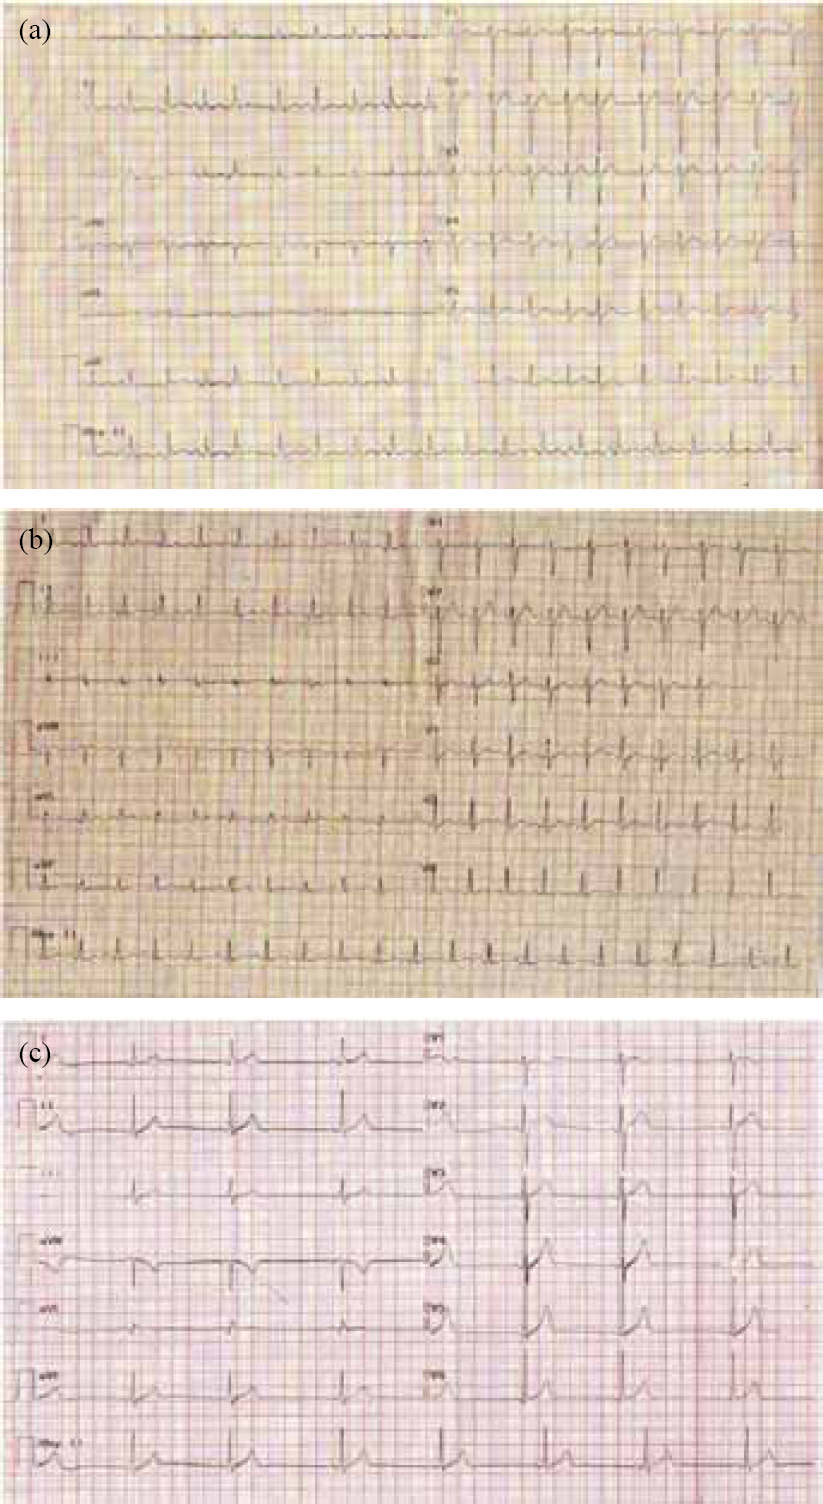 Figure 1: ECG of patient No. 8 showing premature atrial ectopic with tachycardia (a); patient No. 14 showing extreme tachycardia (b); and patient No. 20 showing sinus bradycardia (c).